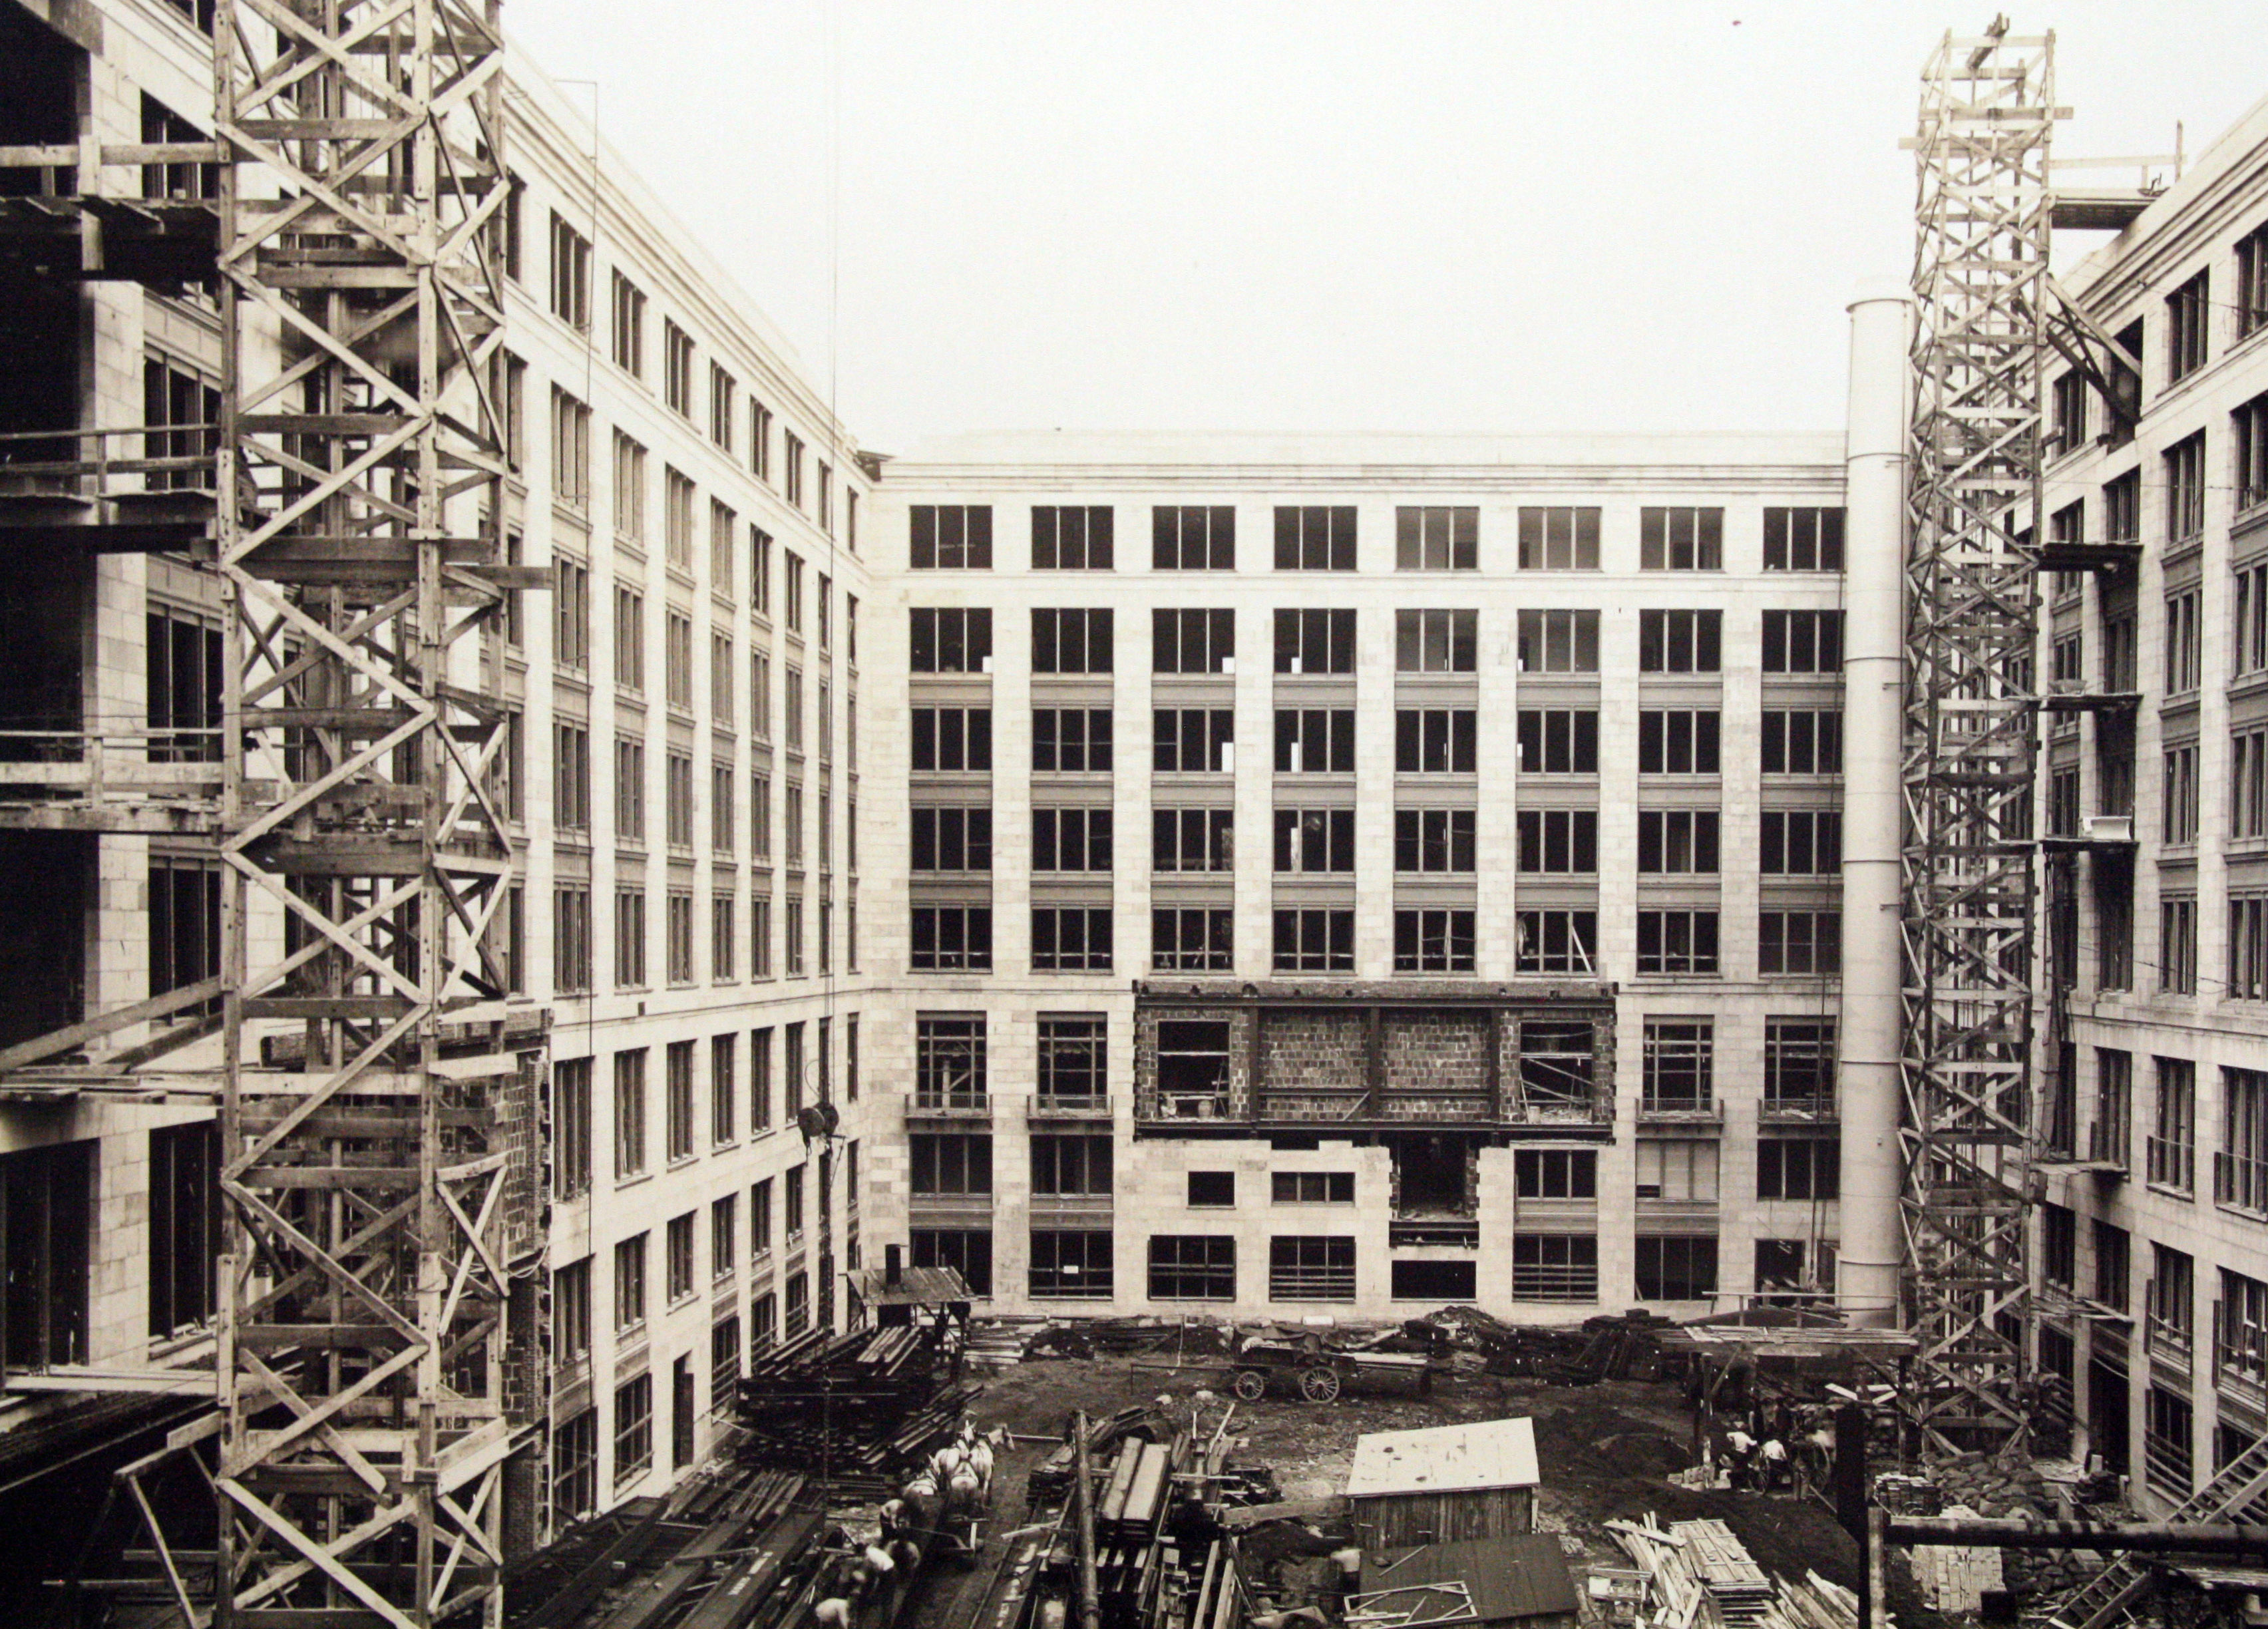 GSA Headquarters building, east courtyard construction, 1916.